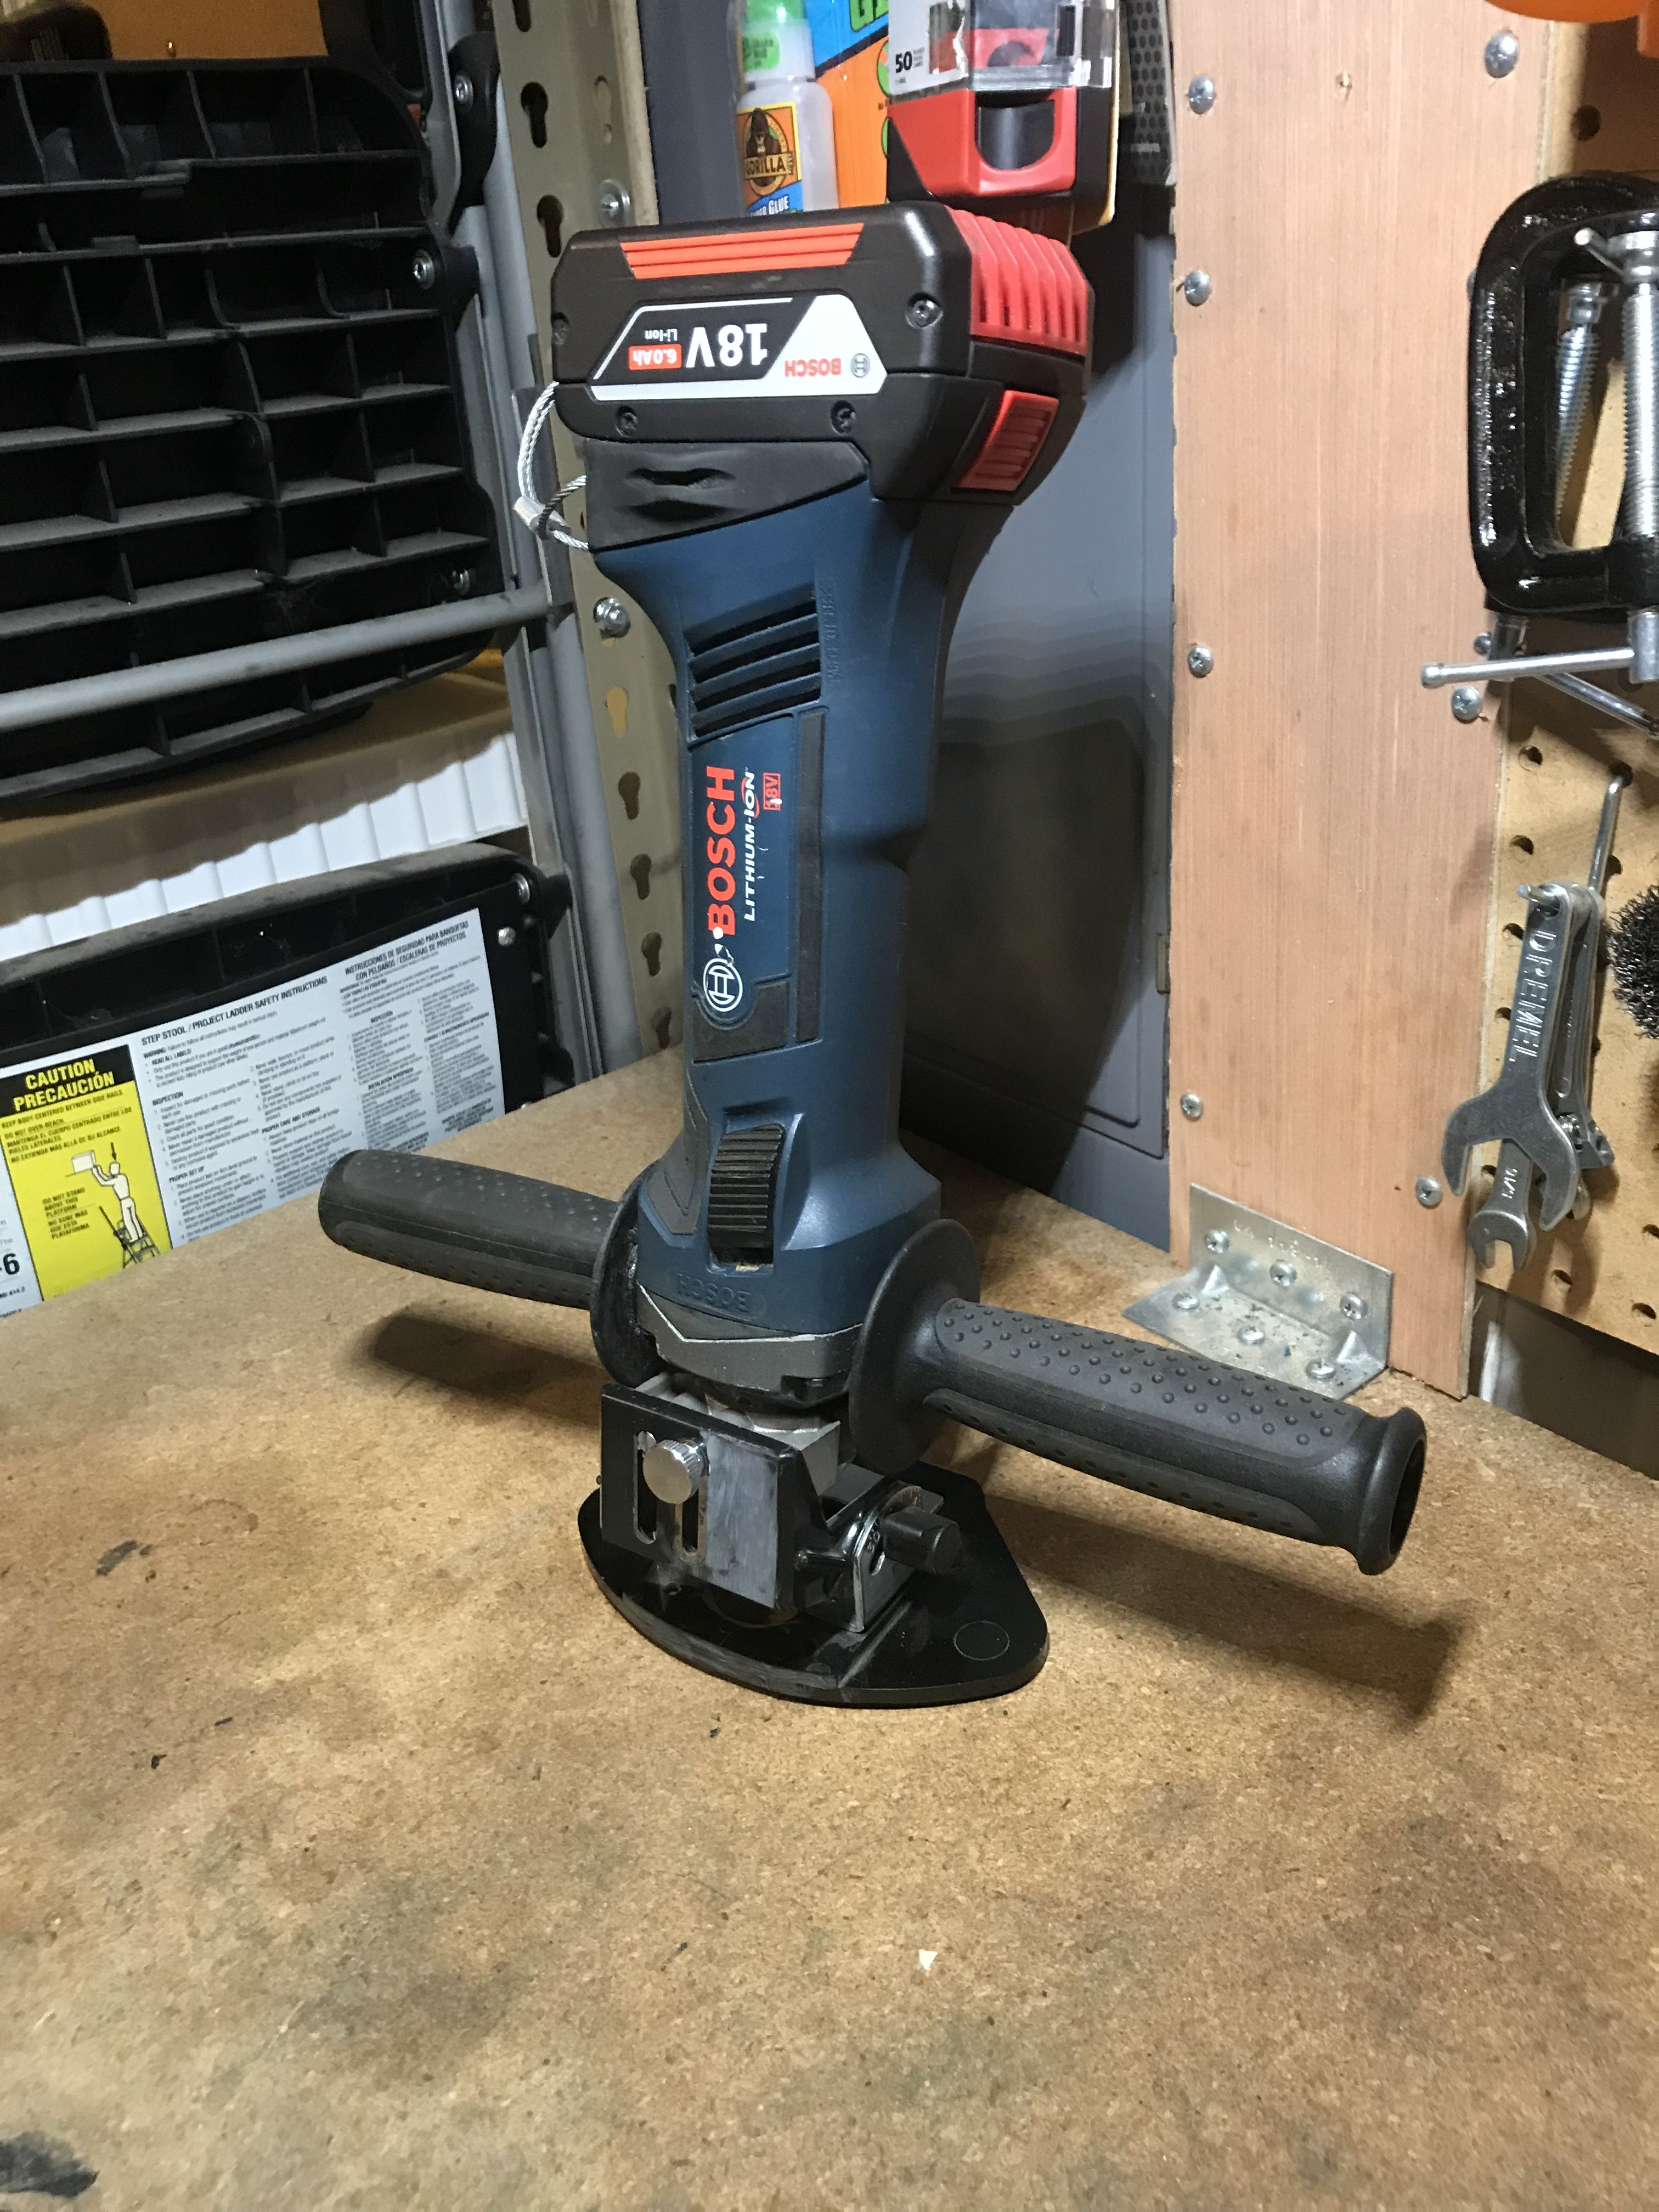 Bosch 18v Die Grinder I Gave It A Lil Bit Of A Face Lift 3rd Generation Concept Now It S My Custom 18v Router As Well Bosch Tools Electrical Tools Bosch